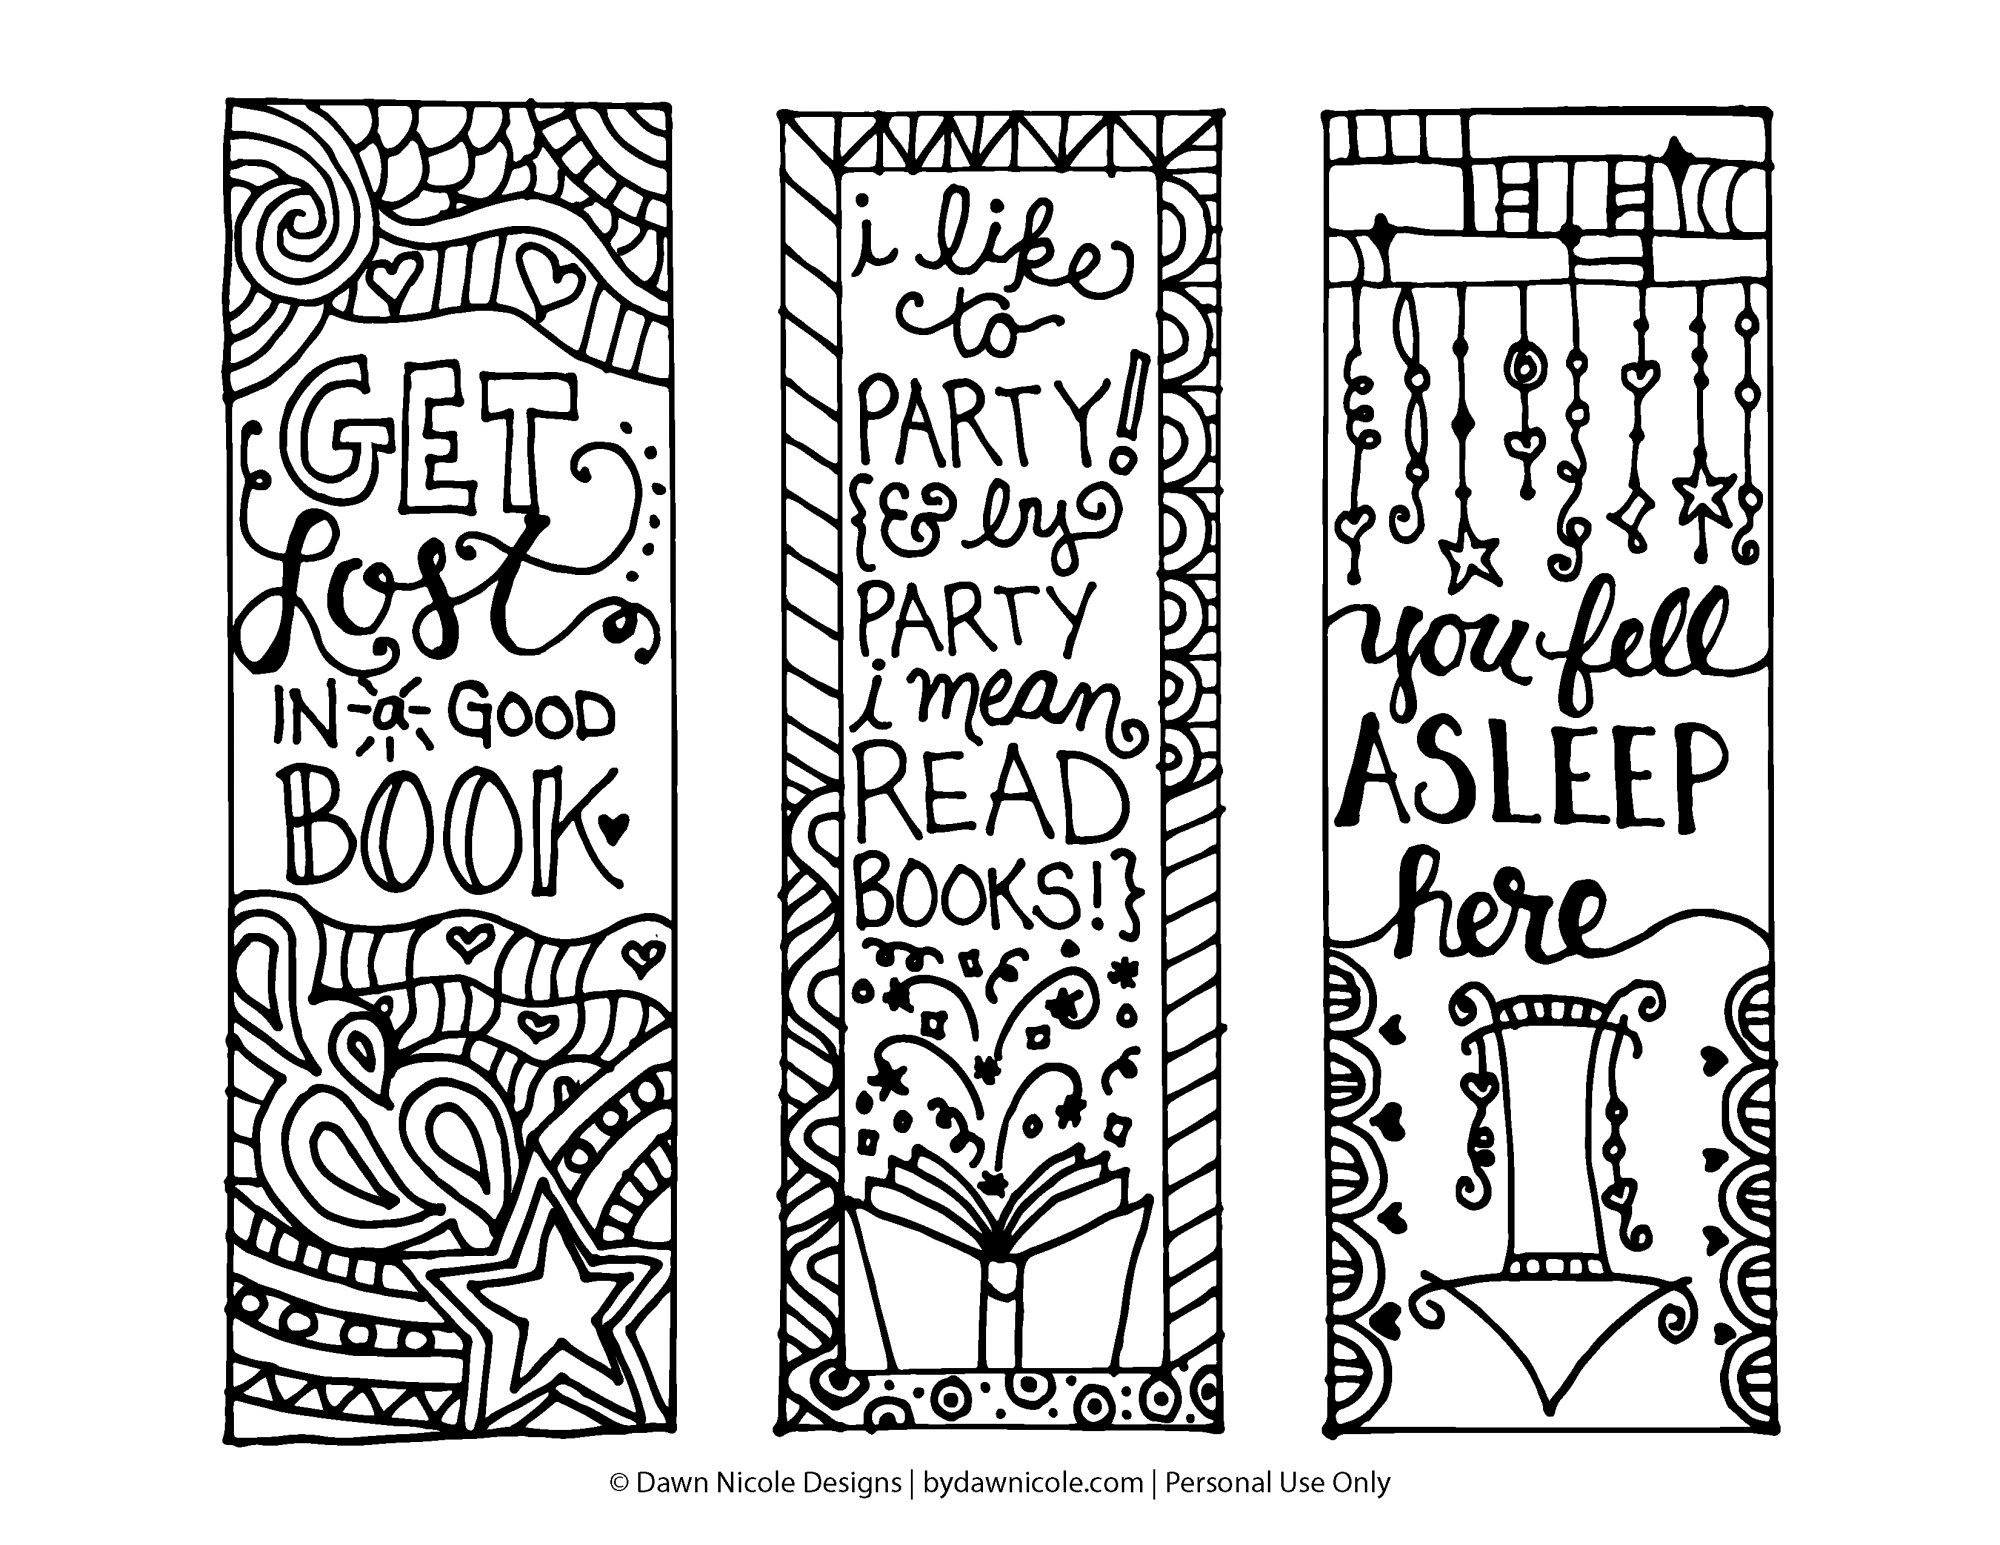 Free Printable Coloring Page Bookmarks   Dawn Nicole Designs® - Free Printable Bookmarks For Libraries